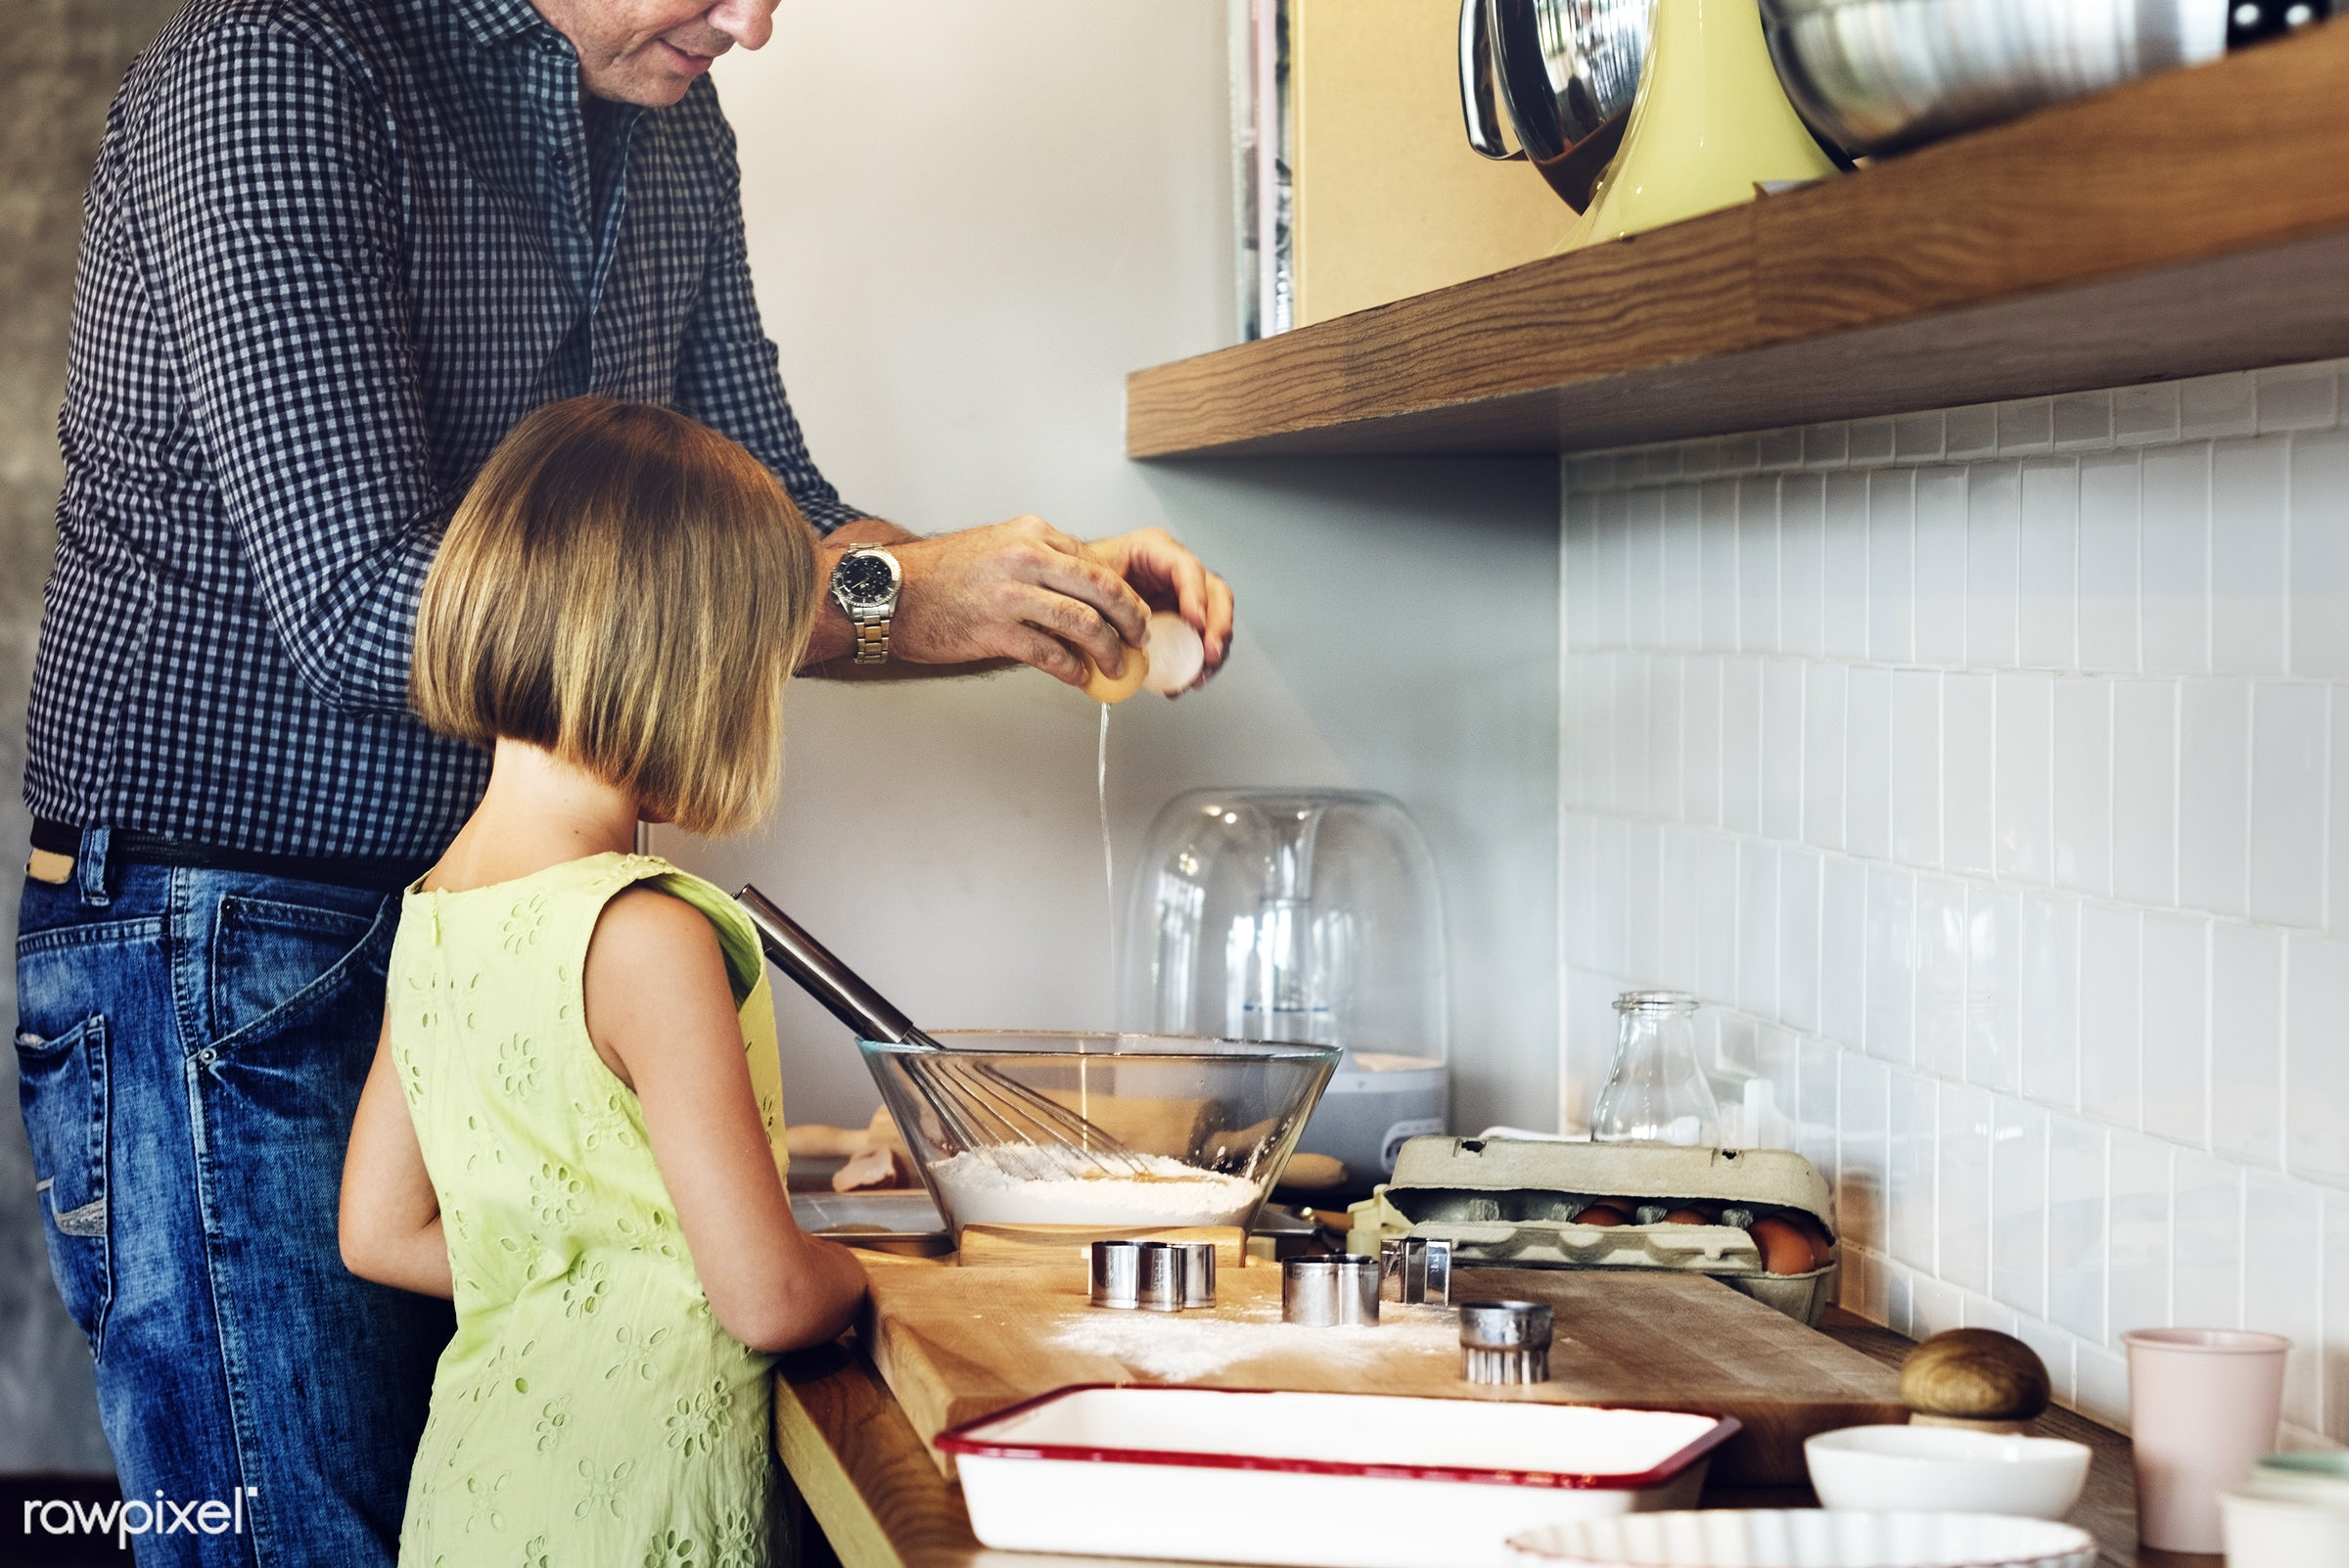 family, dad, father, child, home, kid, kitchen, girl, activity, american, bake, baker, bakery, baking, biscuit, blond,...